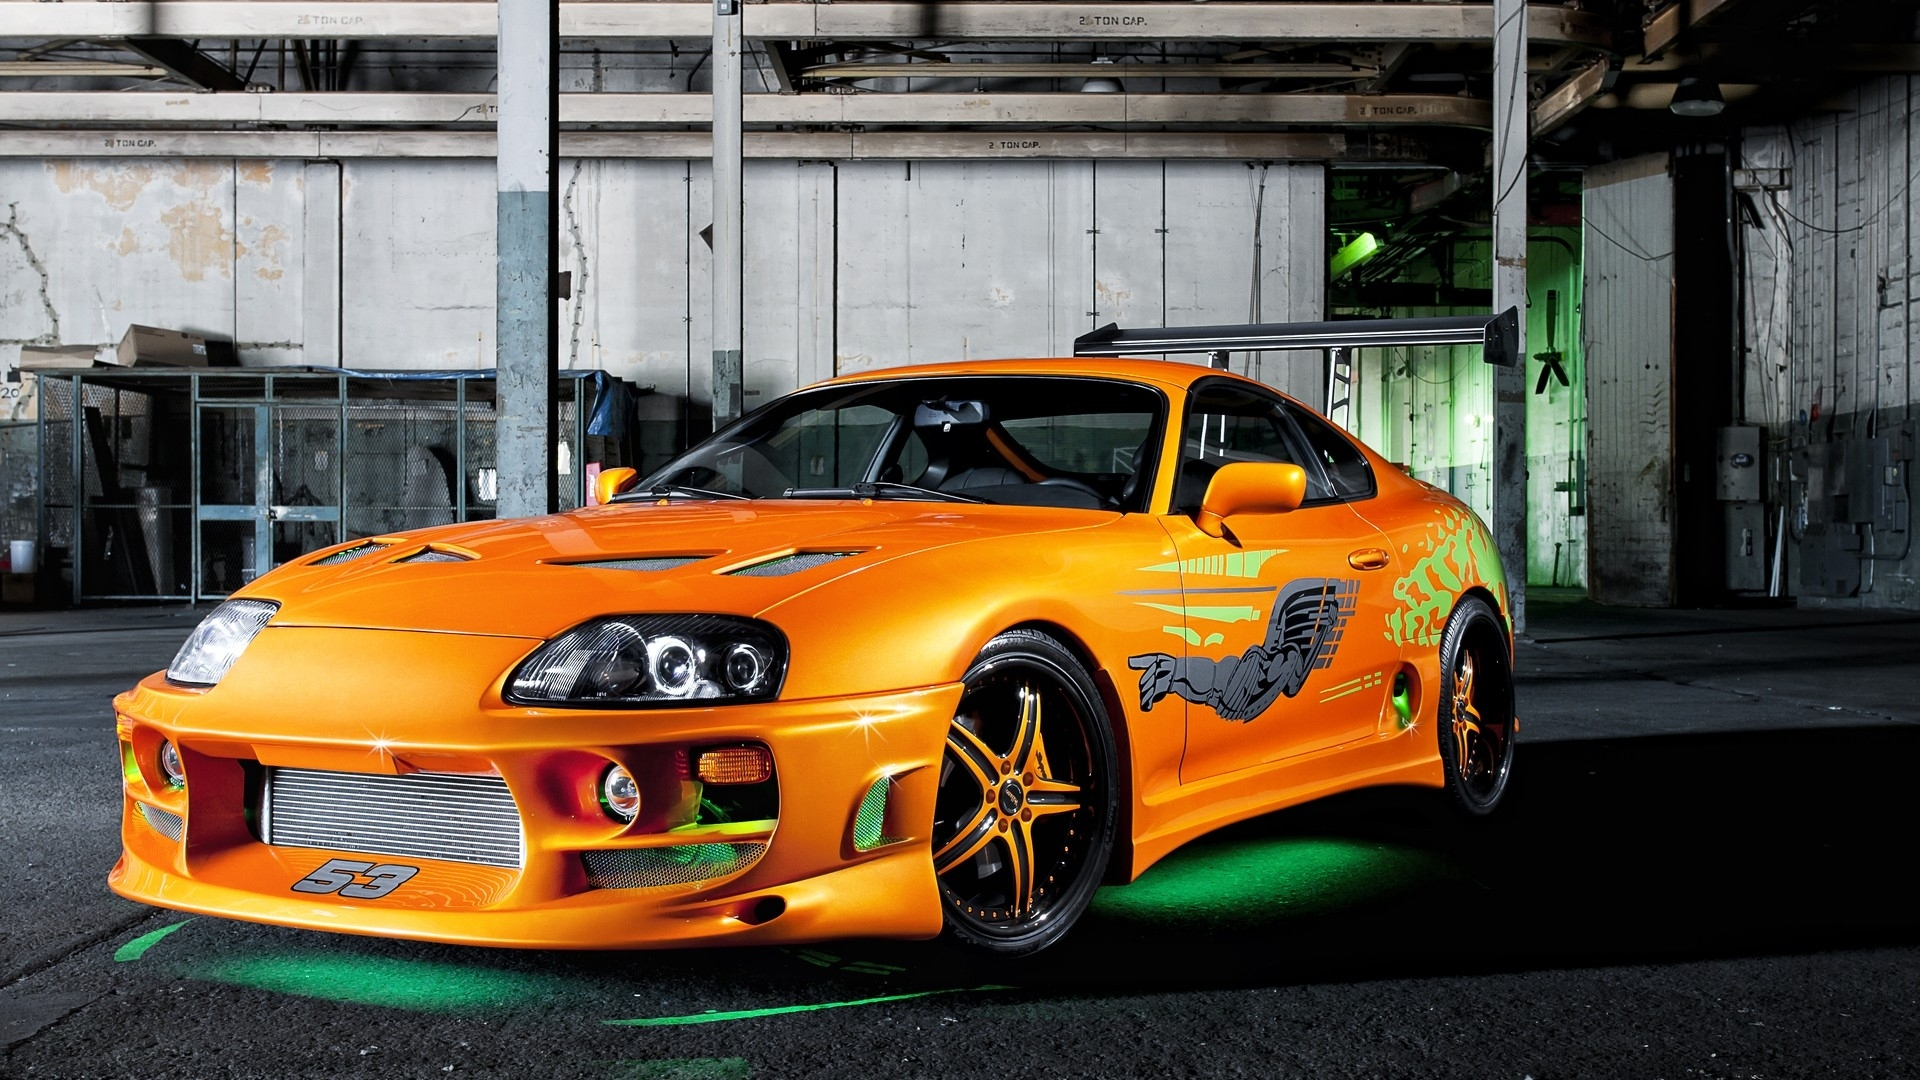 Toyota Of Orange >> Vehicles tuning toyota supra green neon the fast and the ...